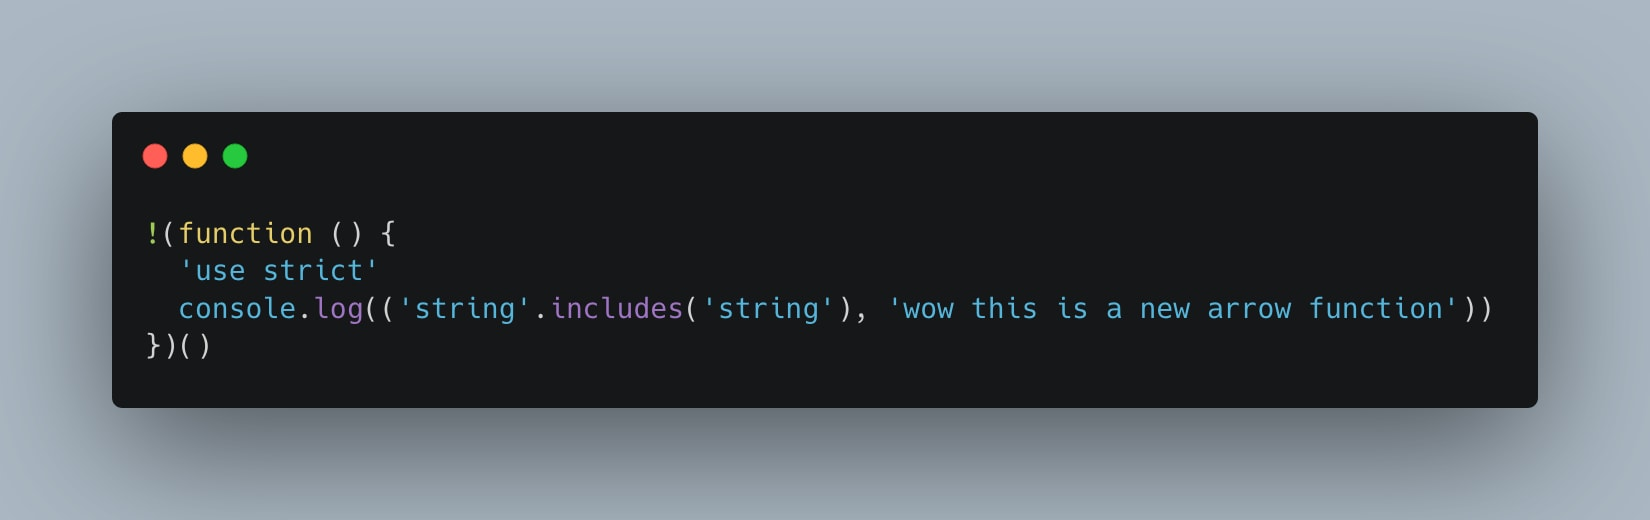 Minified code for my babel compiled code with a set browserslist